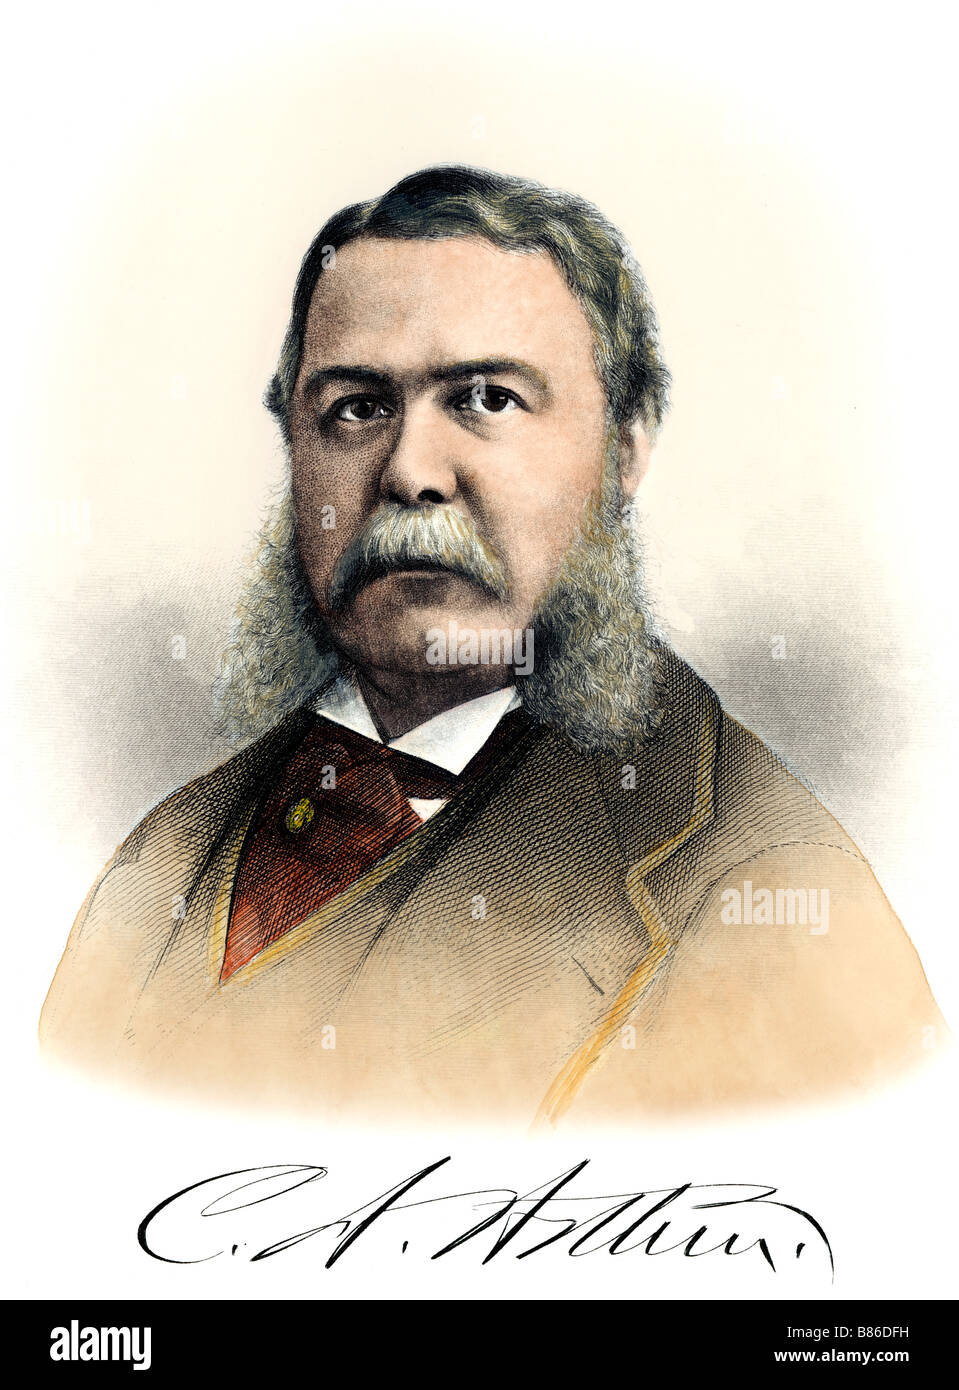 President Chester A. Arthur with his autograph. Hand-colored engraving - Stock Image